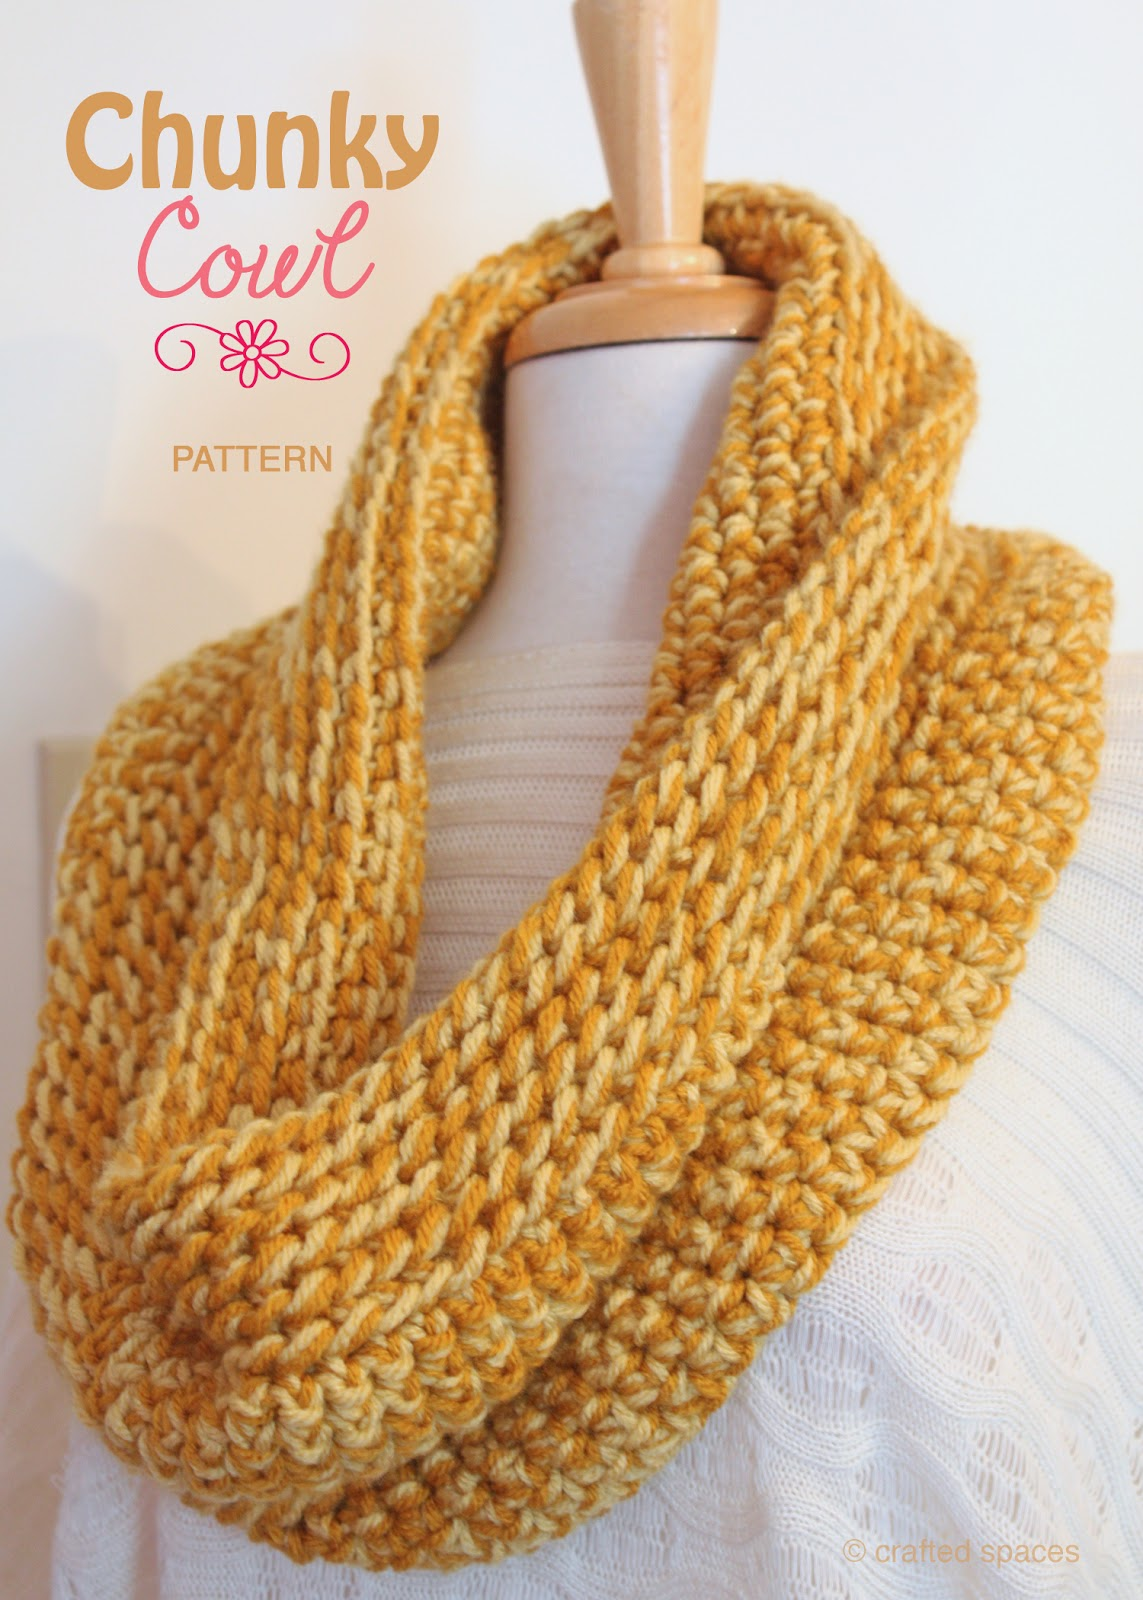 Crochet Patterns Using I Love This Yarn : Email This BlogThis! Share to Twitter Share to Facebook Share to ...